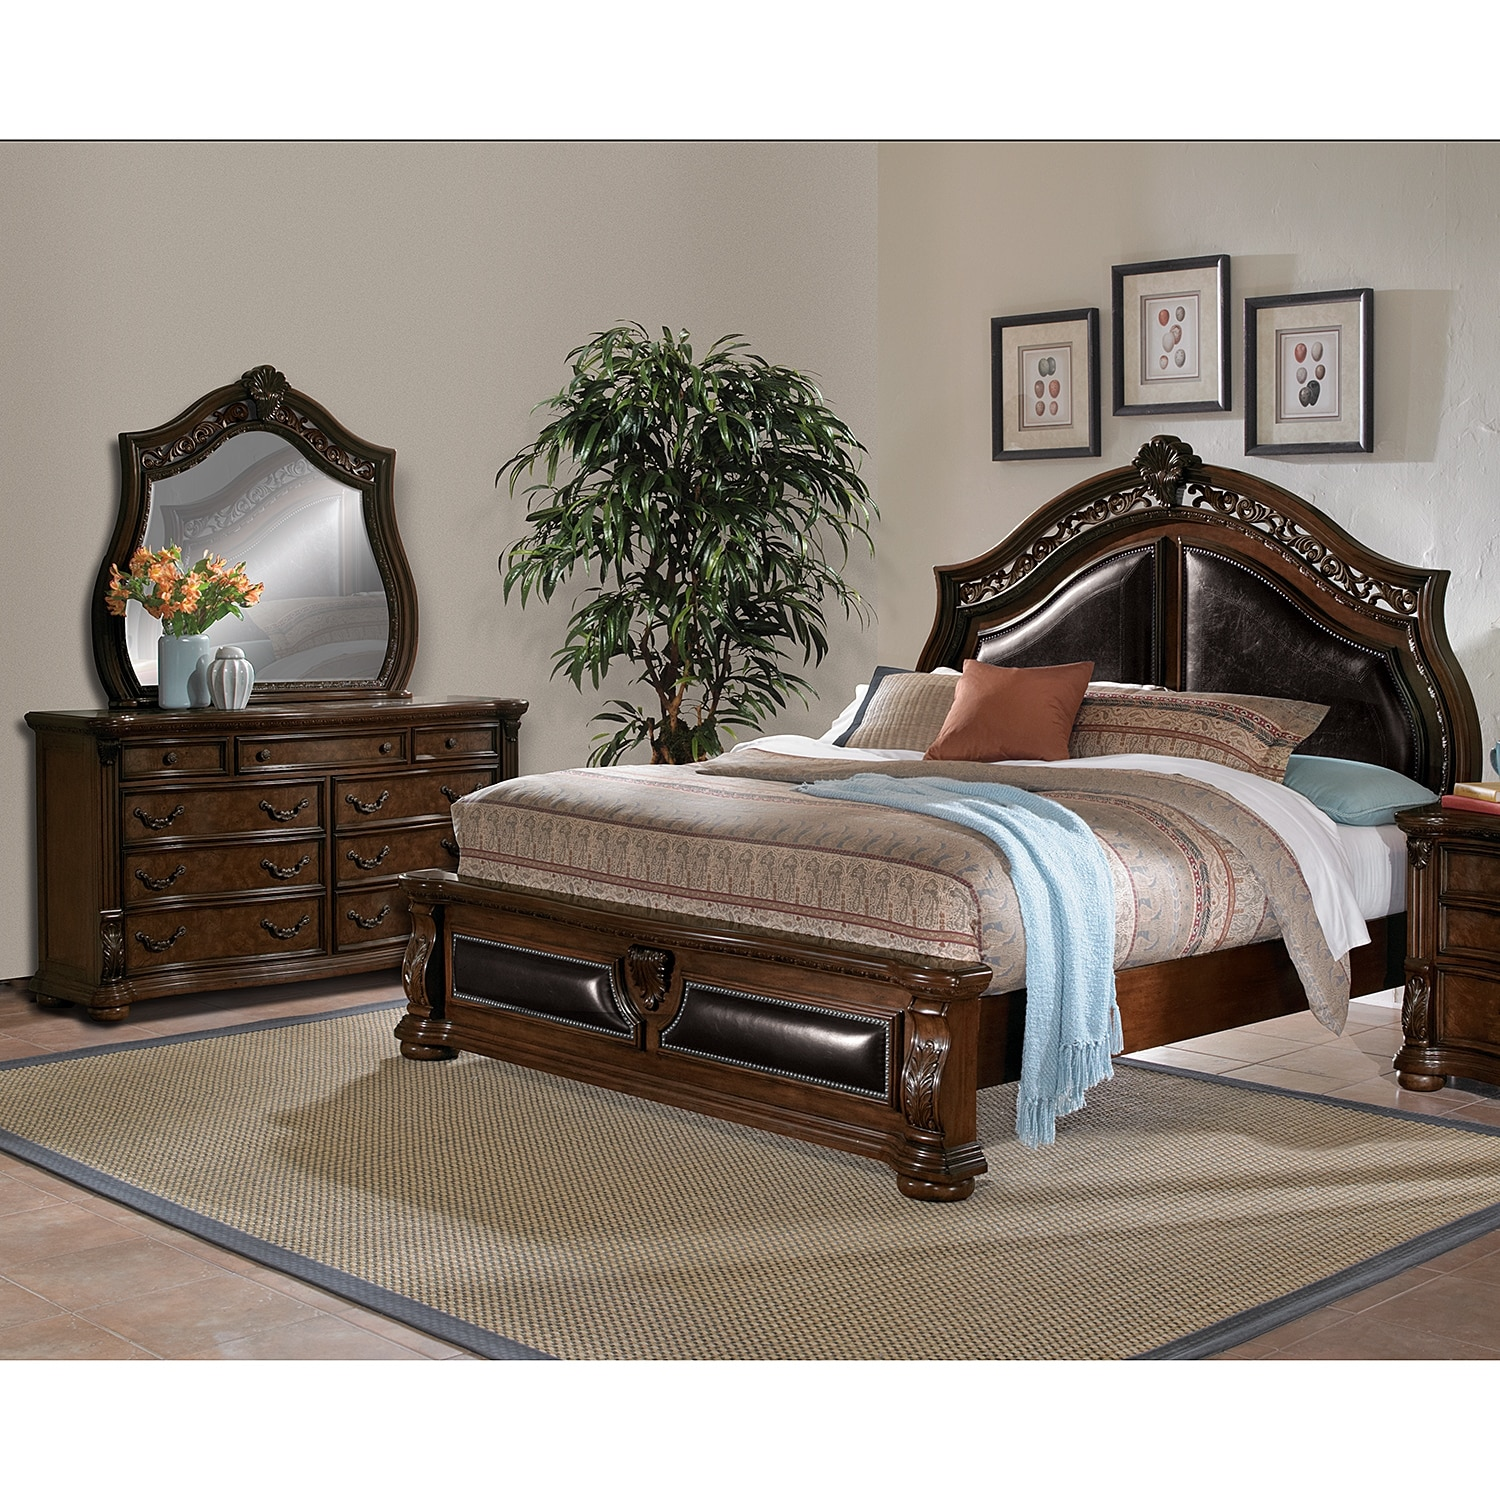 Bedroom Furniture-Morocco 5 Pc. King Bedroom